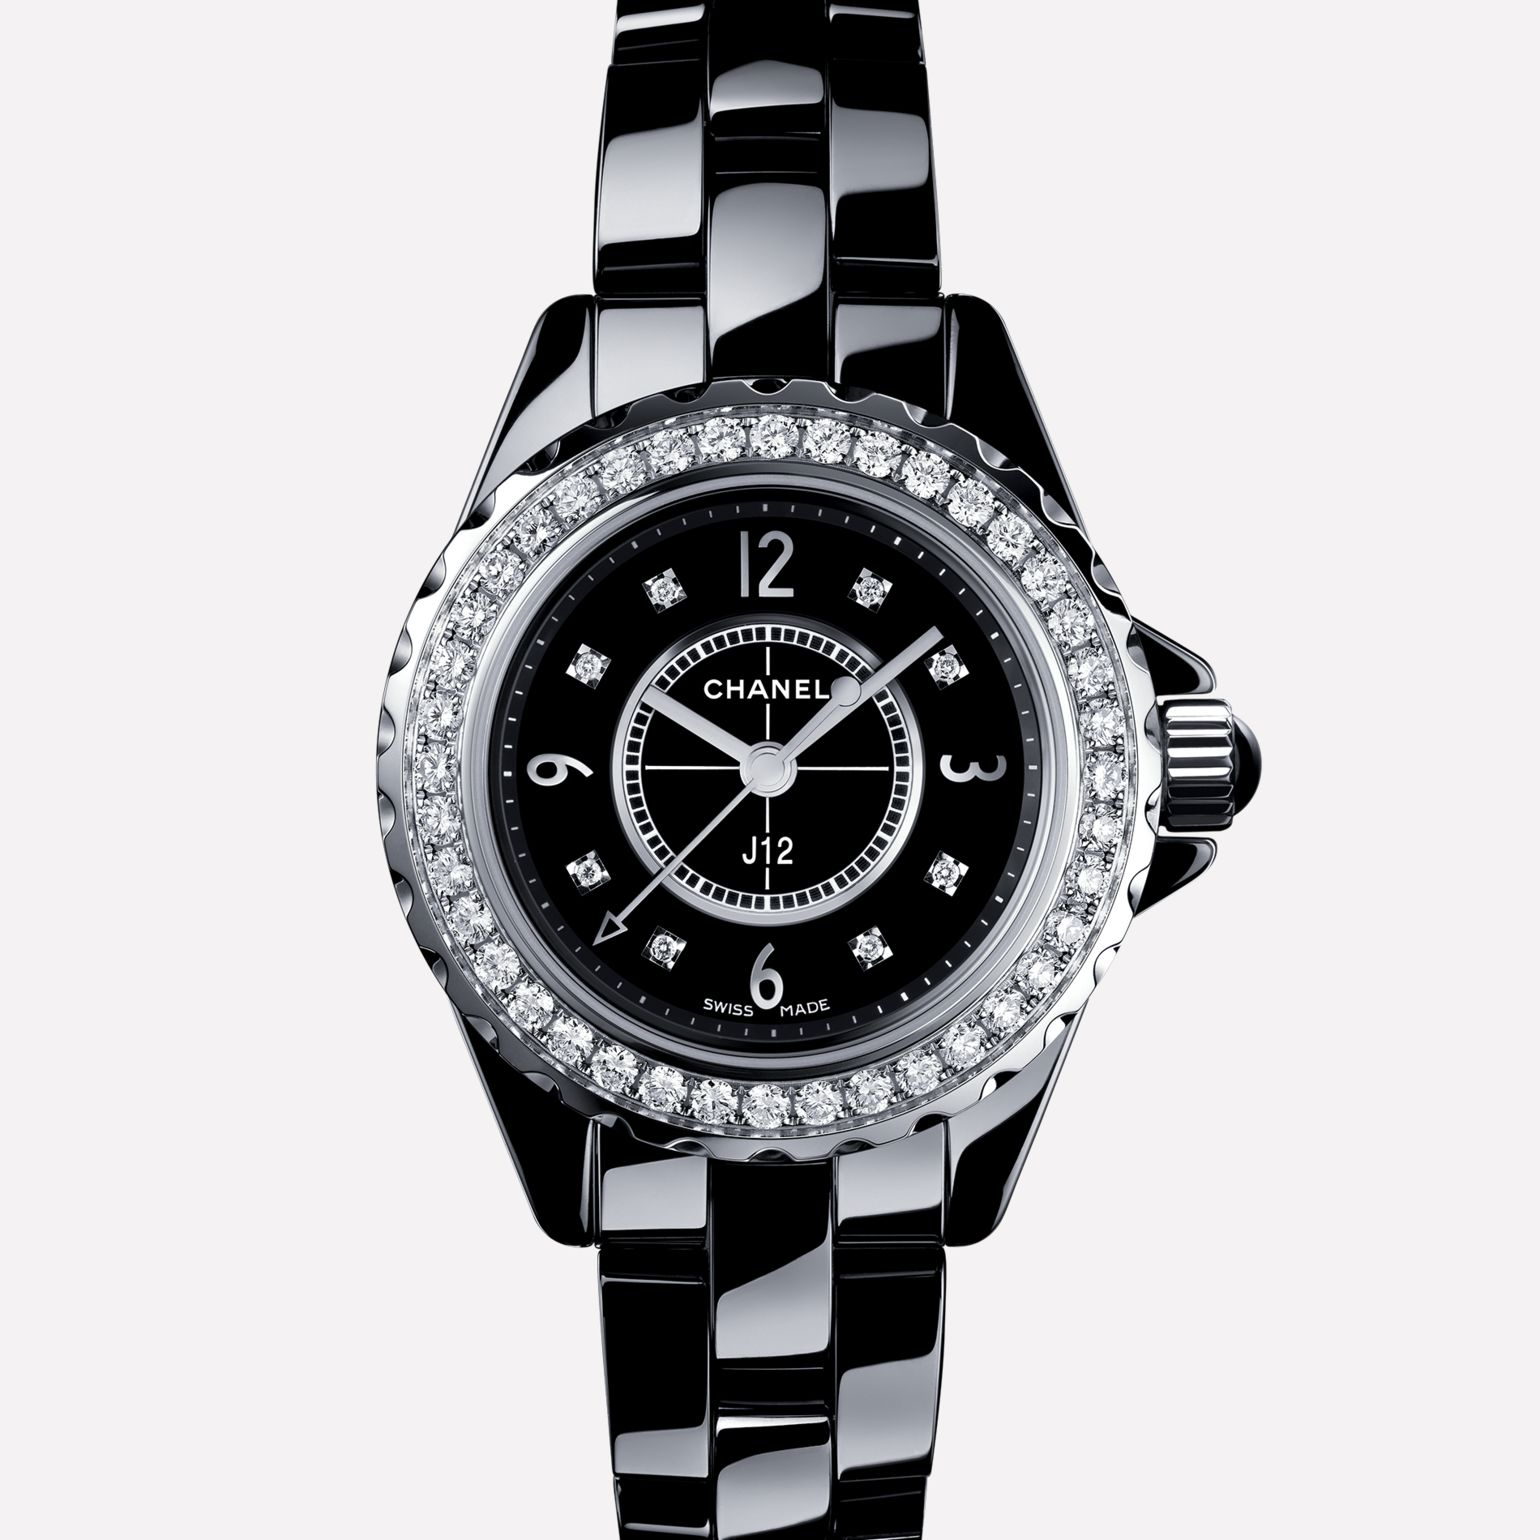 J12 Black highly resistant ceramic and steel, brilliant-cut diamond bezel and indicators